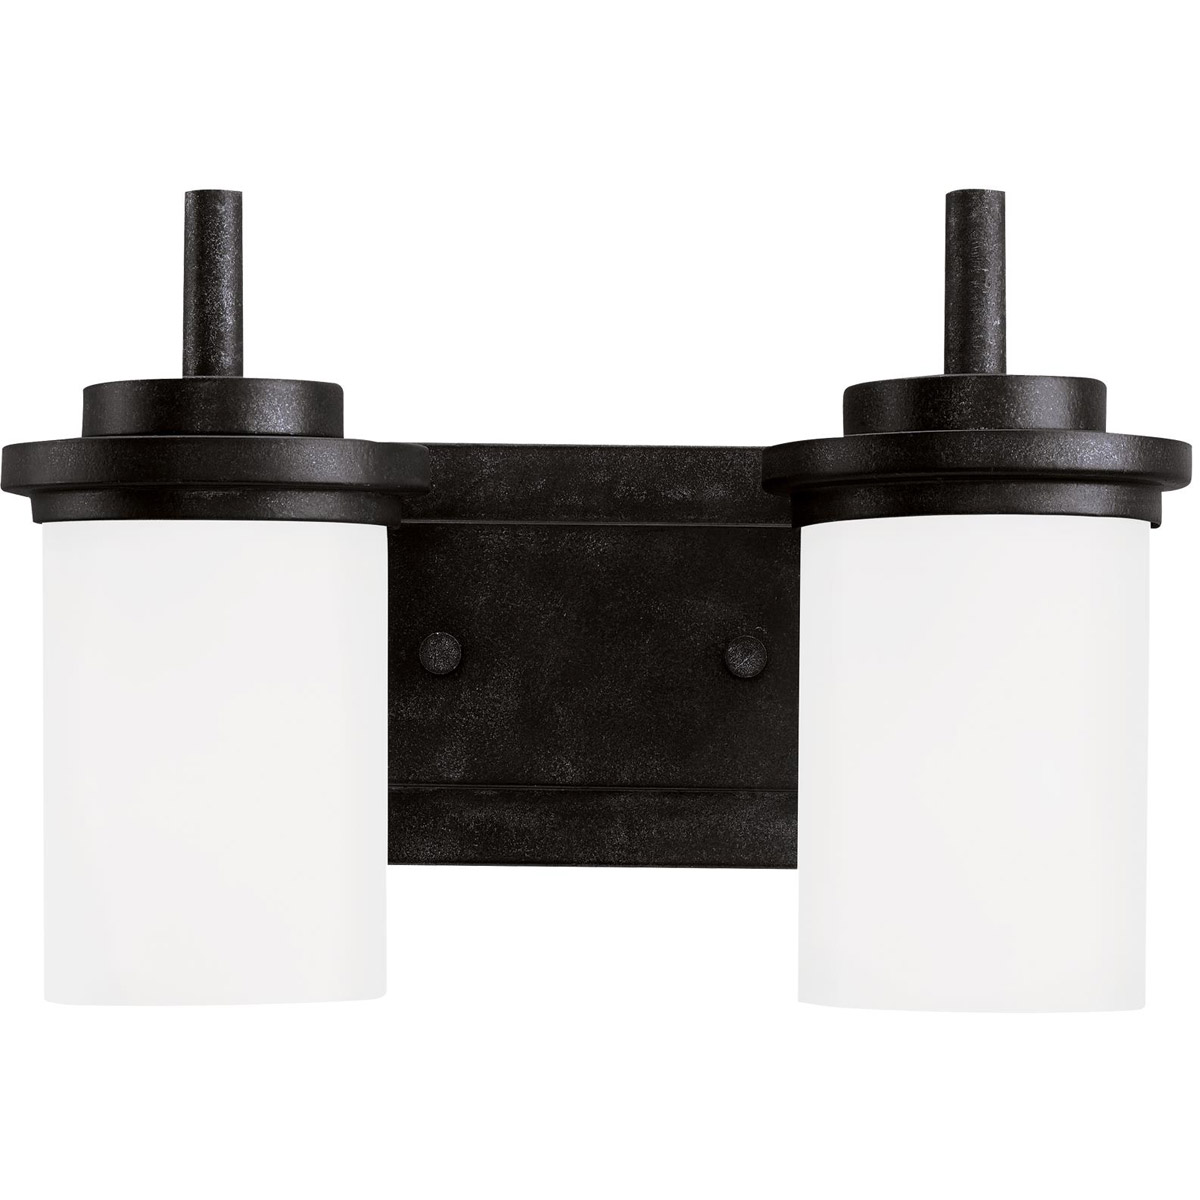 Sea Gull Lighting Winnetka 2 Light Bath Vanity in Blacksmith 44661-839